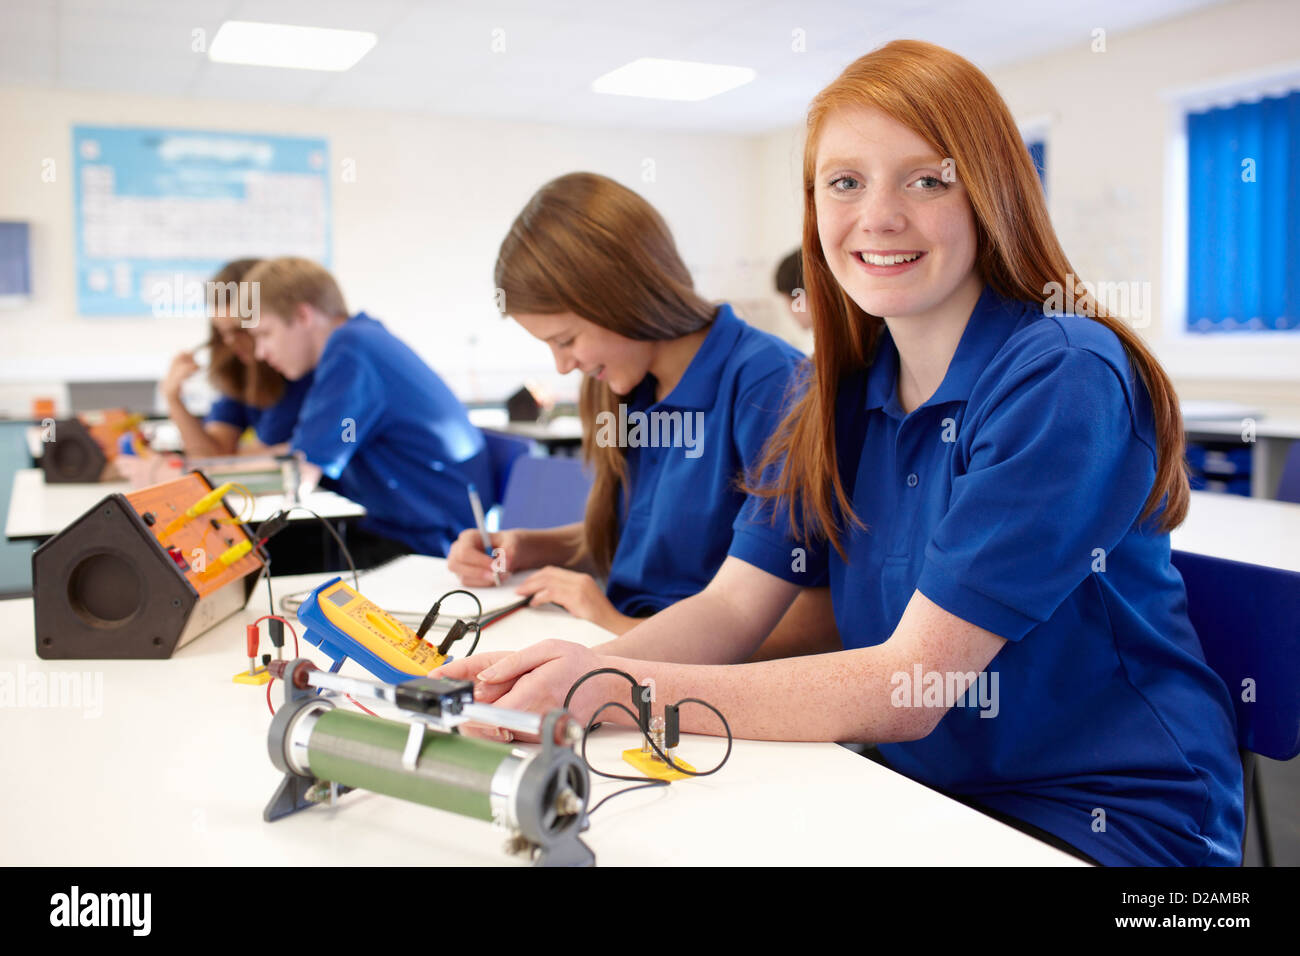 Students working in science class - Stock Image